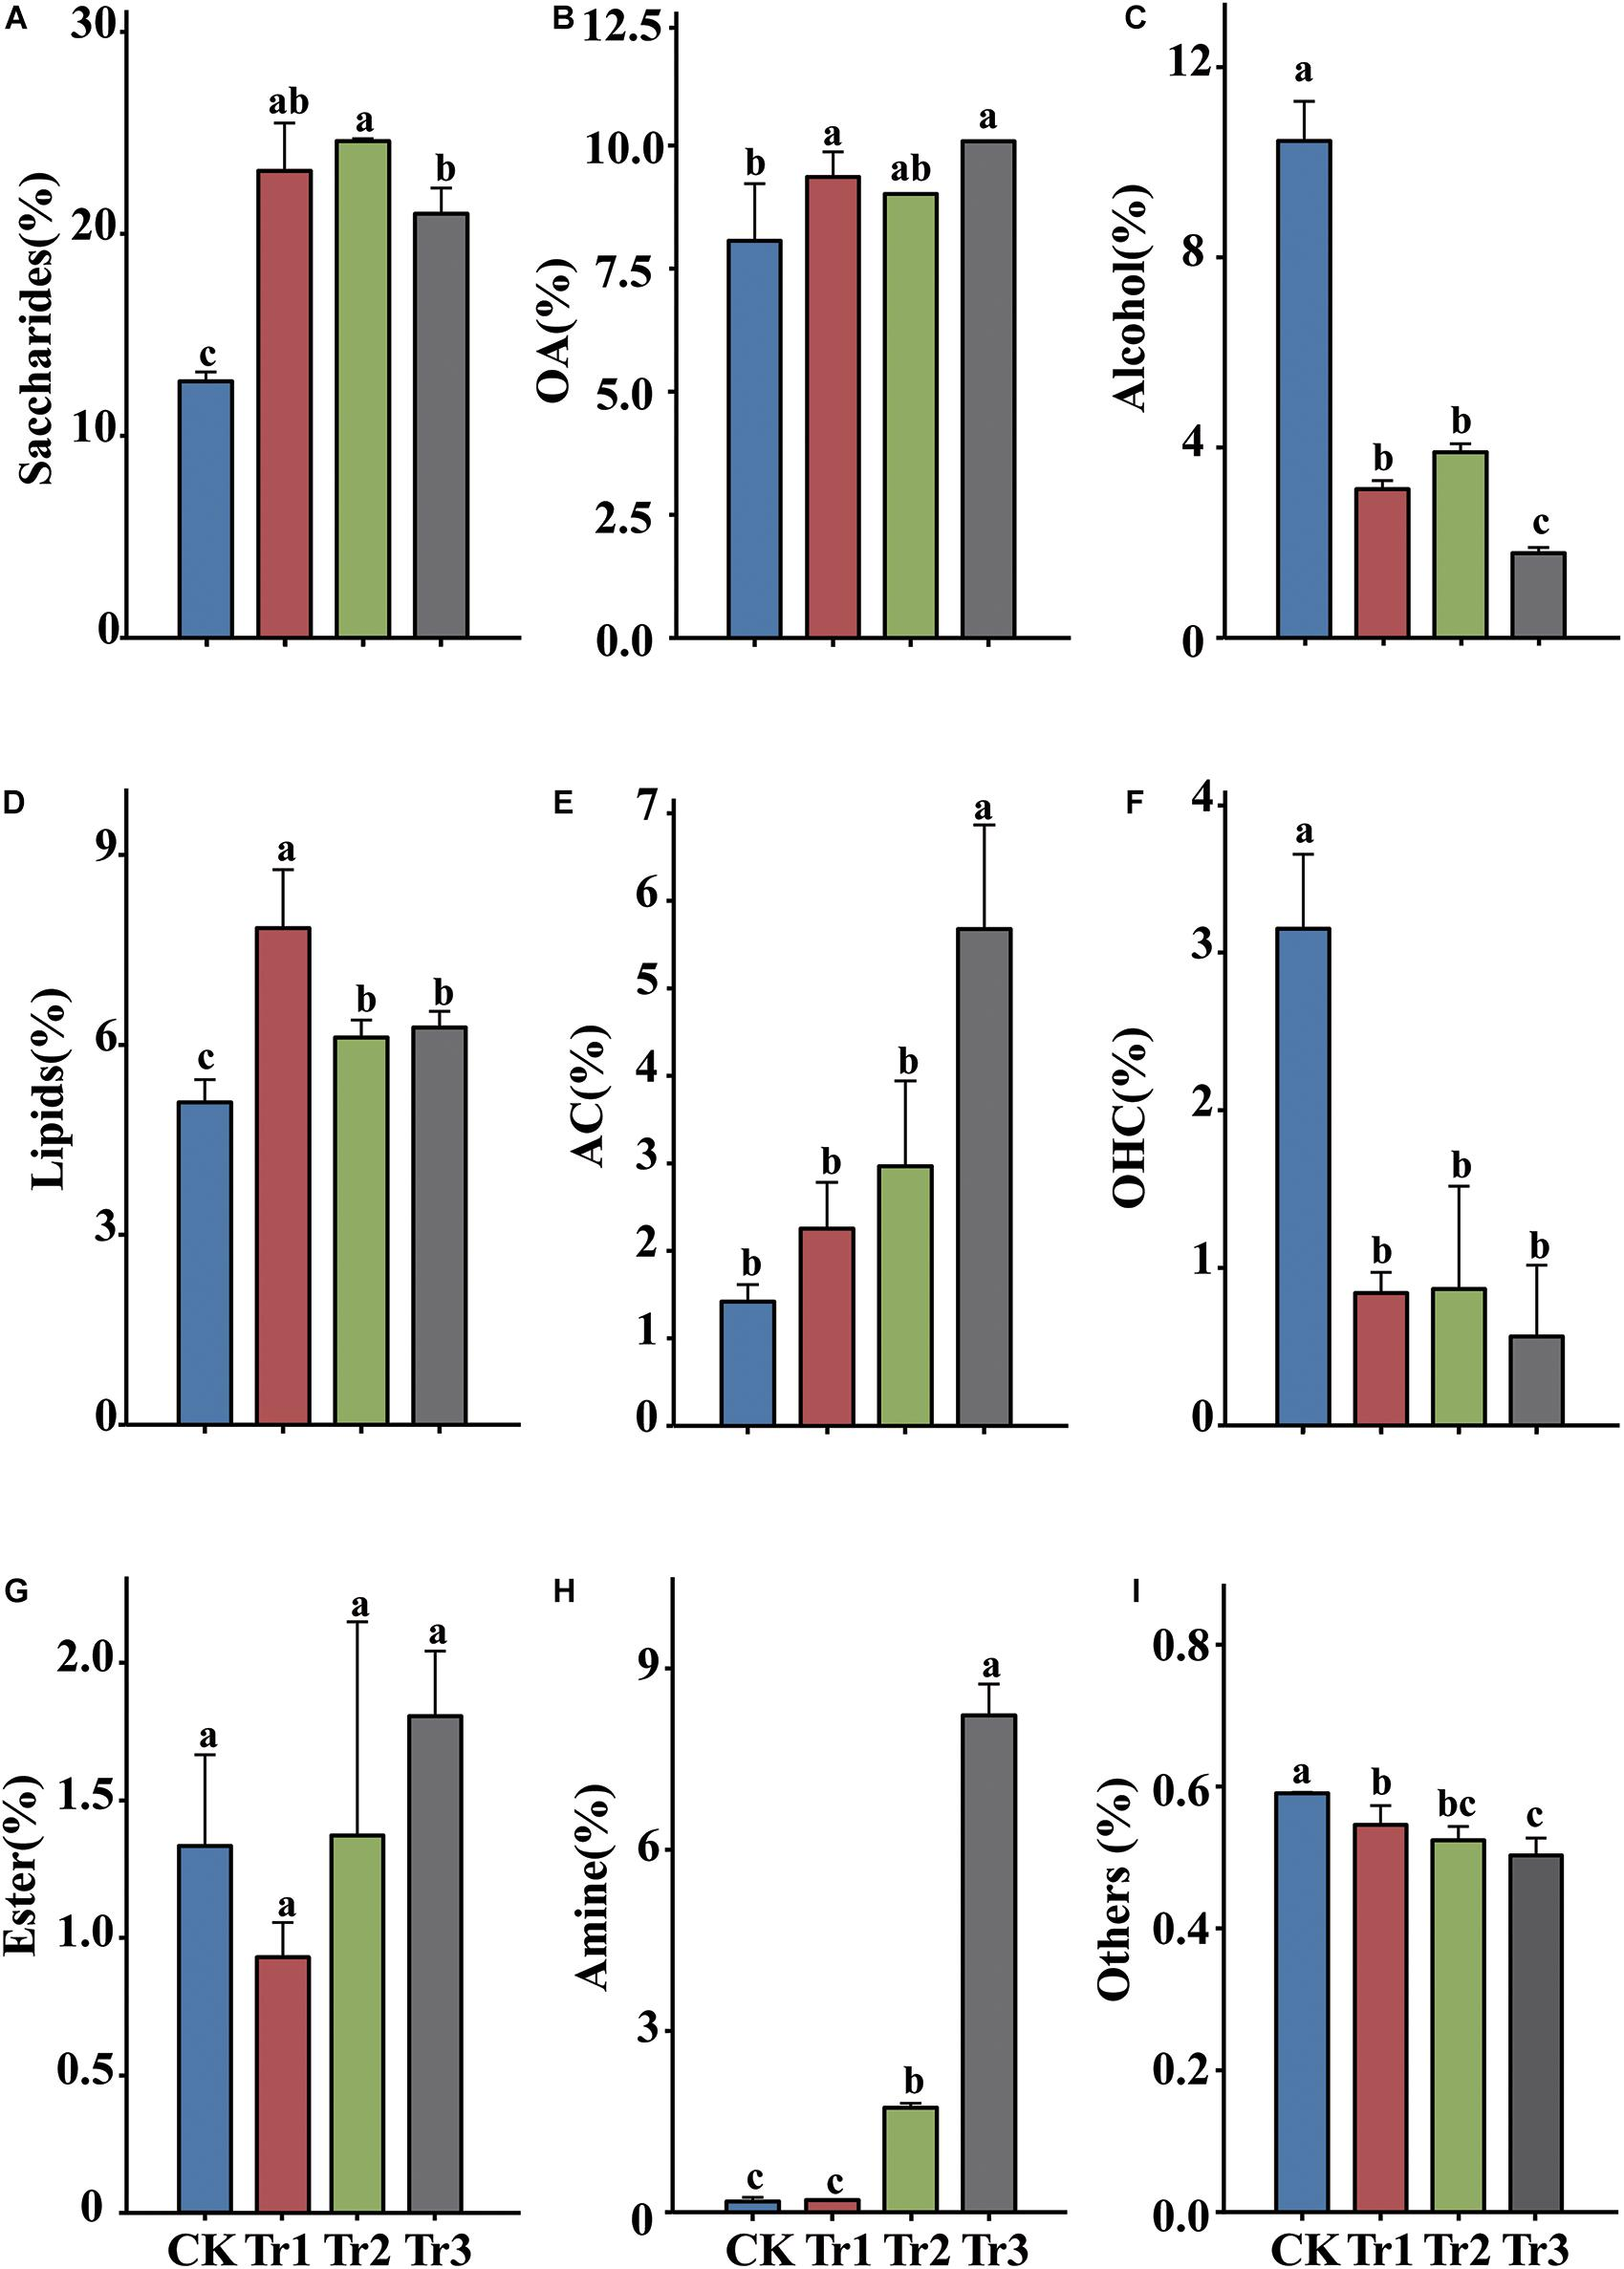 Frontiers Intercropping With Aromatic Plants Increased The Soil Organic Matter Content And Changed The Microbial Community In A Pear Orchard Microbiology